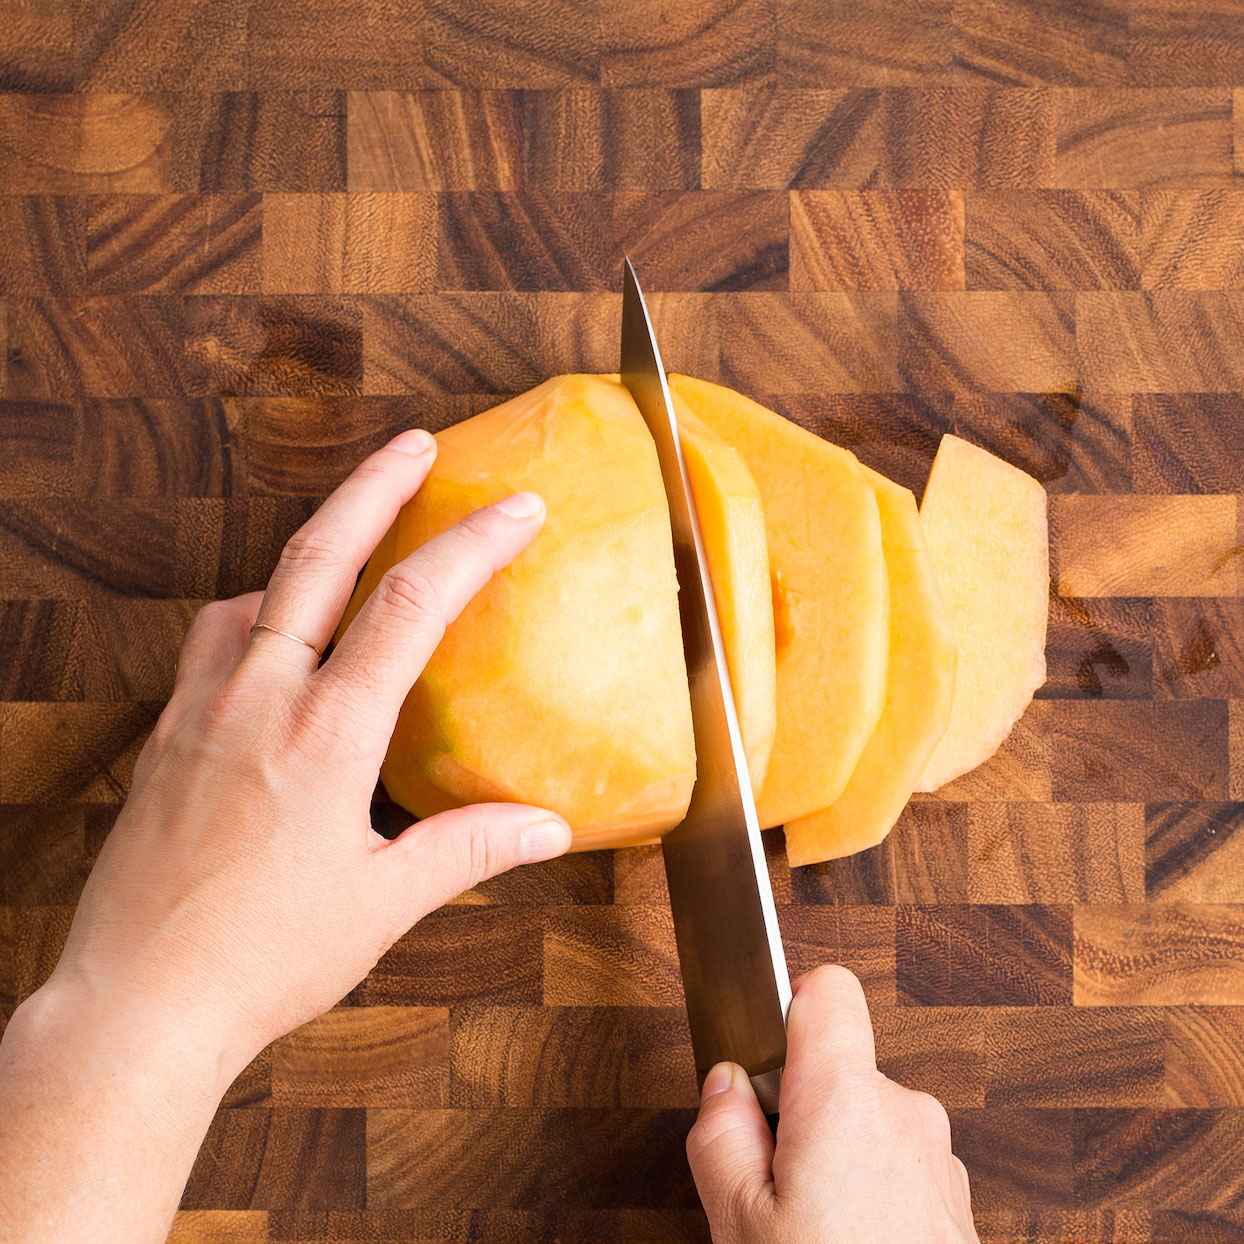 Cutting cantaloupe into wedges